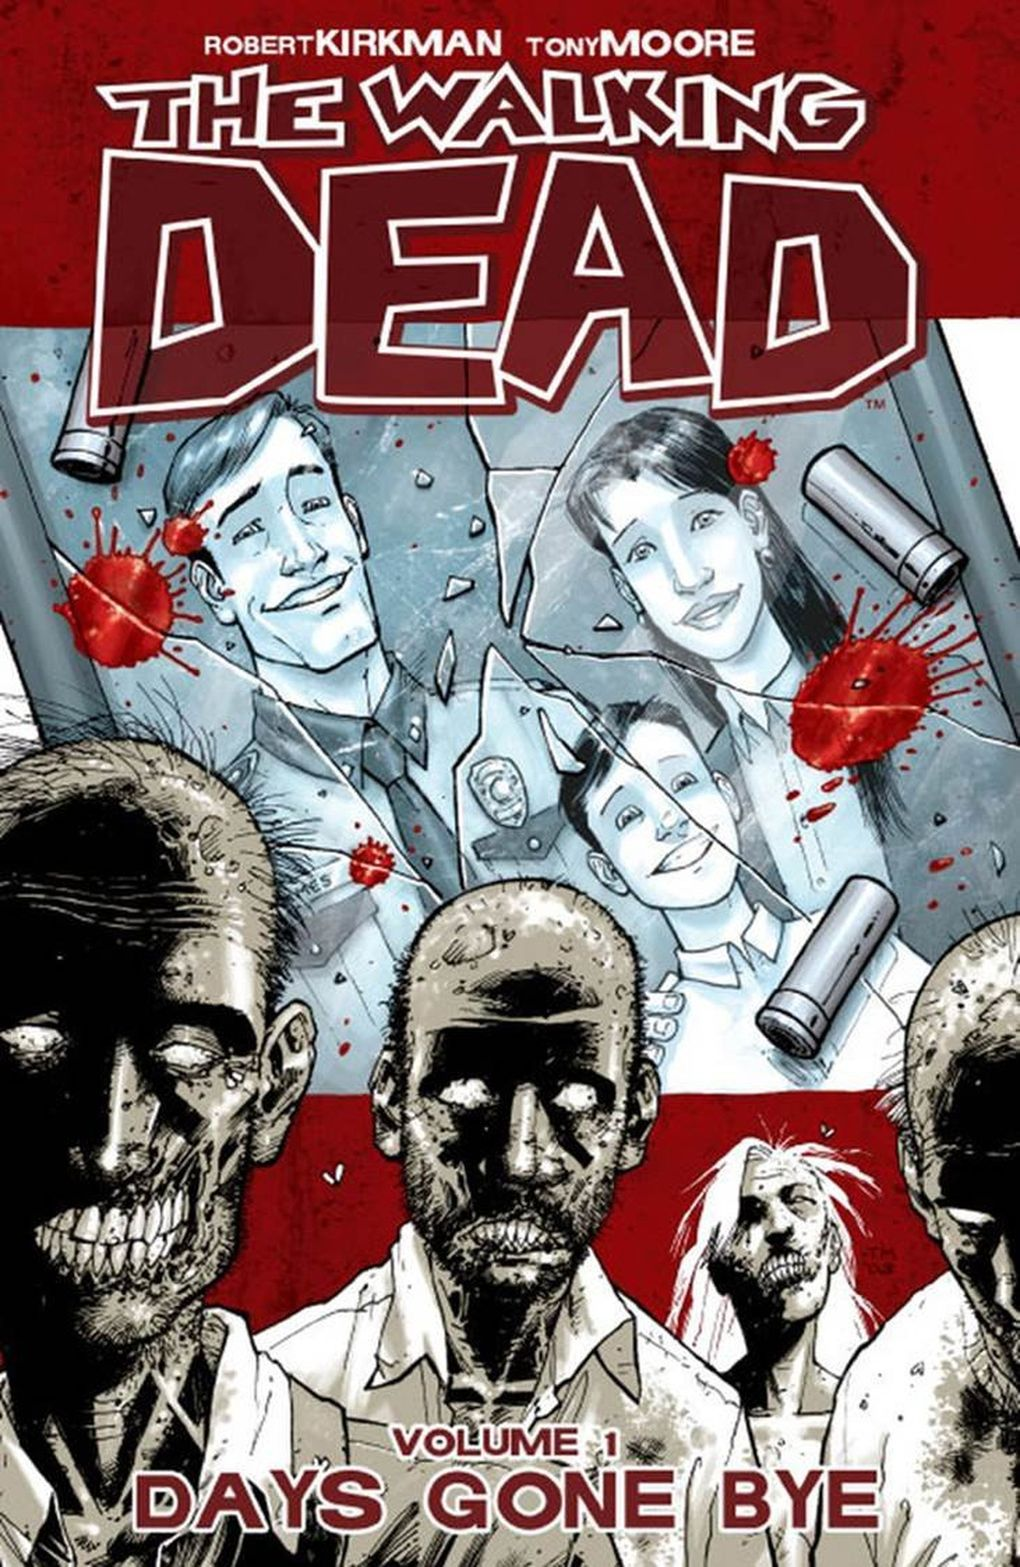 """A cover of """"The Walking Dead"""" by Robert Kirkman and Tony Moore, one of the titles published by Image Comics. (Courtesy of Image Comics)"""